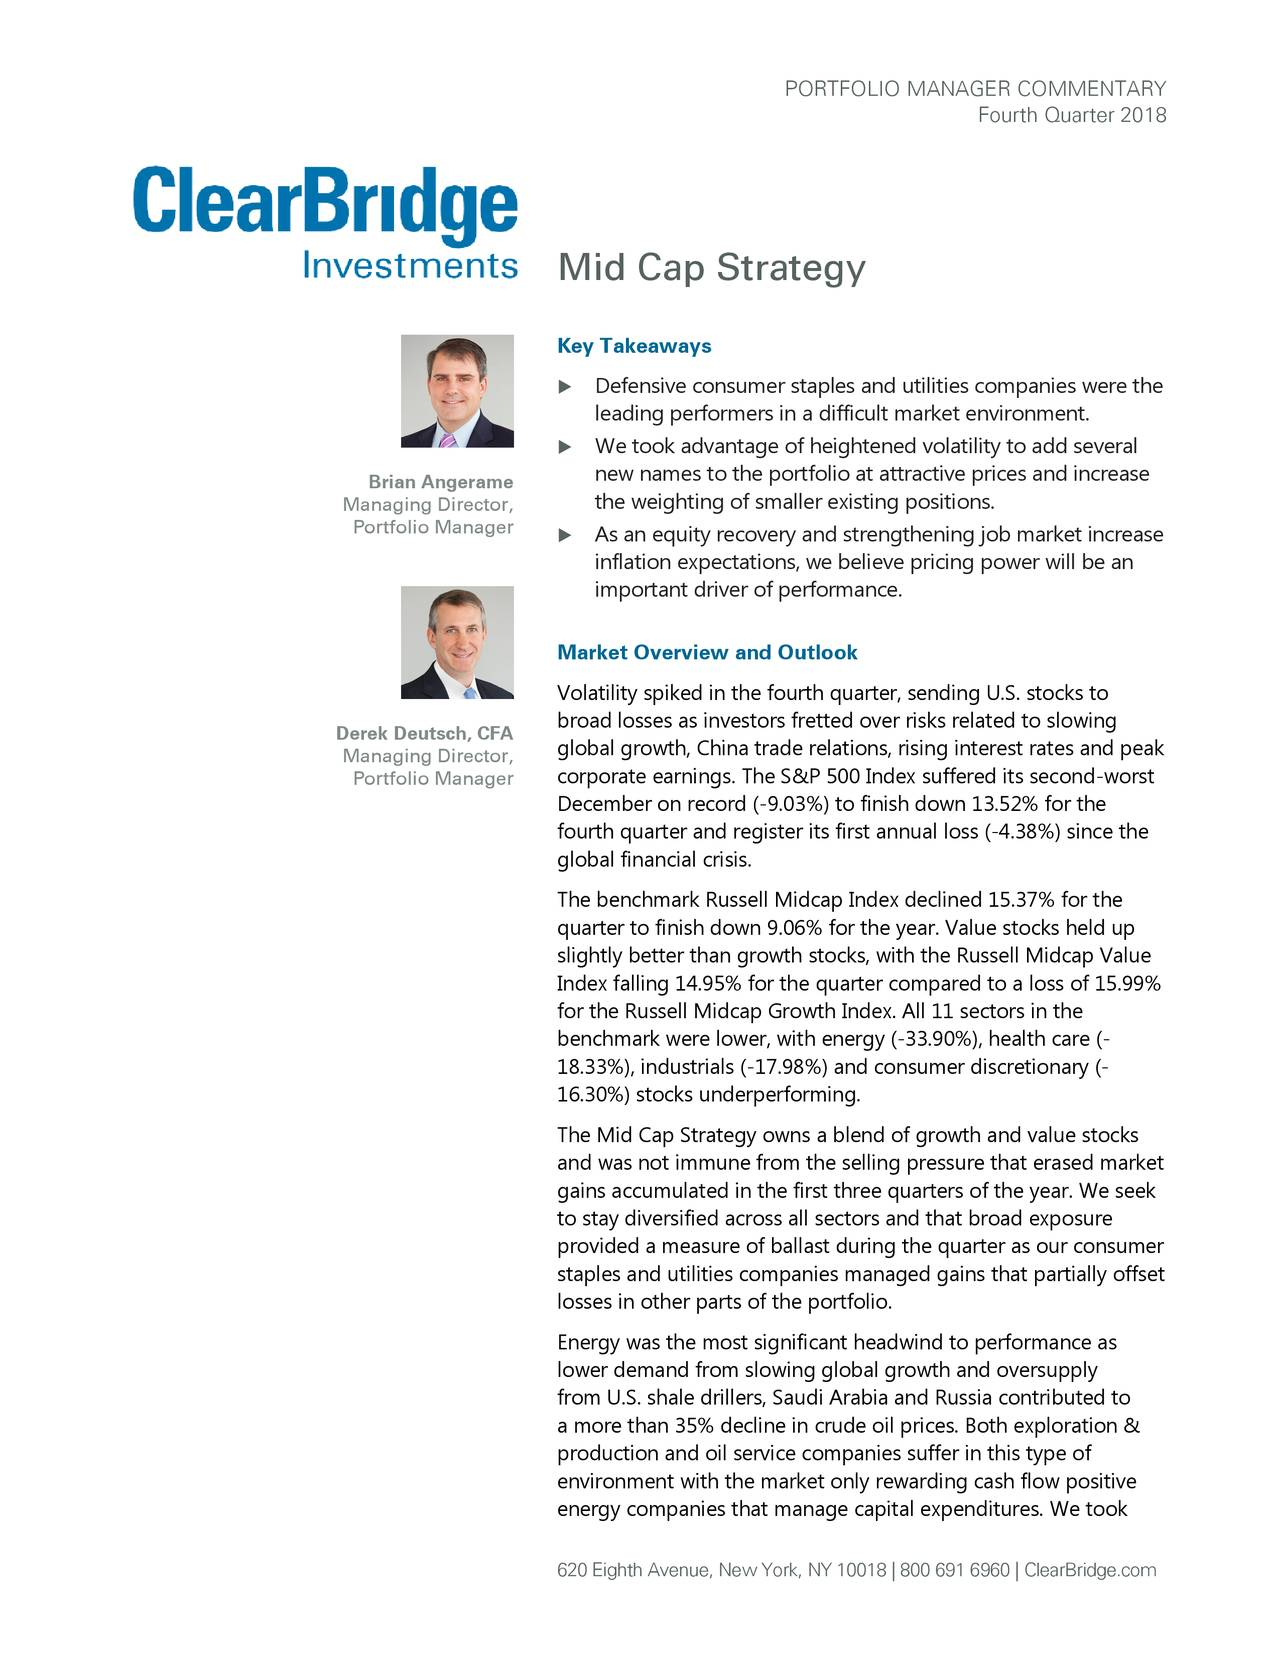 Fourth Quarter 2018 Mid Cap Strategy Key Takeaways  Defensive consumer staples and utilities companies were the leading performers in a difficult market environment .  We took advantage of heightened volatility to add several Brian Angerame new names to the portfolio at attractive prices and increase the weighting of smaller existing positions. Managing Director, Portfolio Manager  As an equity recovery and strengthening job market increase inflation expectations, we believe pricing power will be an important driver of pe rformance. Market Overview and Outlook Volatility spiked in the fourth quarter, sending U.S. stocks to Derek Deutsch, CFA broad losses as investors fretted over risks related to slowing global growth, China trade relations, rising interest rates and peak Managing Director, Portfolio Manager corporate earnings. The S&P 500 Index suffered its second-worst December on record (-9.03%) to finish down 13.52% for the fourth quarter and register its first annual loss (-4.38%) since the global financial crisis. The benchmark Russell Midcap Index declined 15.37% for the quarter to finish down 9.06% for the year. Value stocks held up slightly better than growth stocks, with the Russell Midcap Value Index falling 14.95% for the quarter compared to a loss of 15.99% for the Russell Midcap Growth Index. All 11 sectors in the benchmark were lower, with energy (-33.90%), health care (- 18.33%), industrials (-17.98%) and consumer discretionary (- 16.30%) stocks underperforming. The Mid Cap Strategy owns a blend of growth and value stocks and was not immune from the selling pressure that erased market gains accumulated in the first three quarters of the year. We seek to stay diversified across all sectors and that broad exposure provided a measure of ballast during the quarter as our consumer staples and utilities companies managed gains that partially offset losses in other parts of the portfolio. Energy was the most significant headwind to performance as lower demand from slowing global growth and oversupply from U.S. shale drillers, Saudi Arabia and Russia contributed to a more than 35% decline in crude oil prices. Both exploration & production and oil service companies suffer in this type of environment with the market only rewarding cash flow positive energy companies that manage capital expenditures. We took 620 Eighth Avenue, New York, NY 10018 | 800 691 6960C|learBridge.com